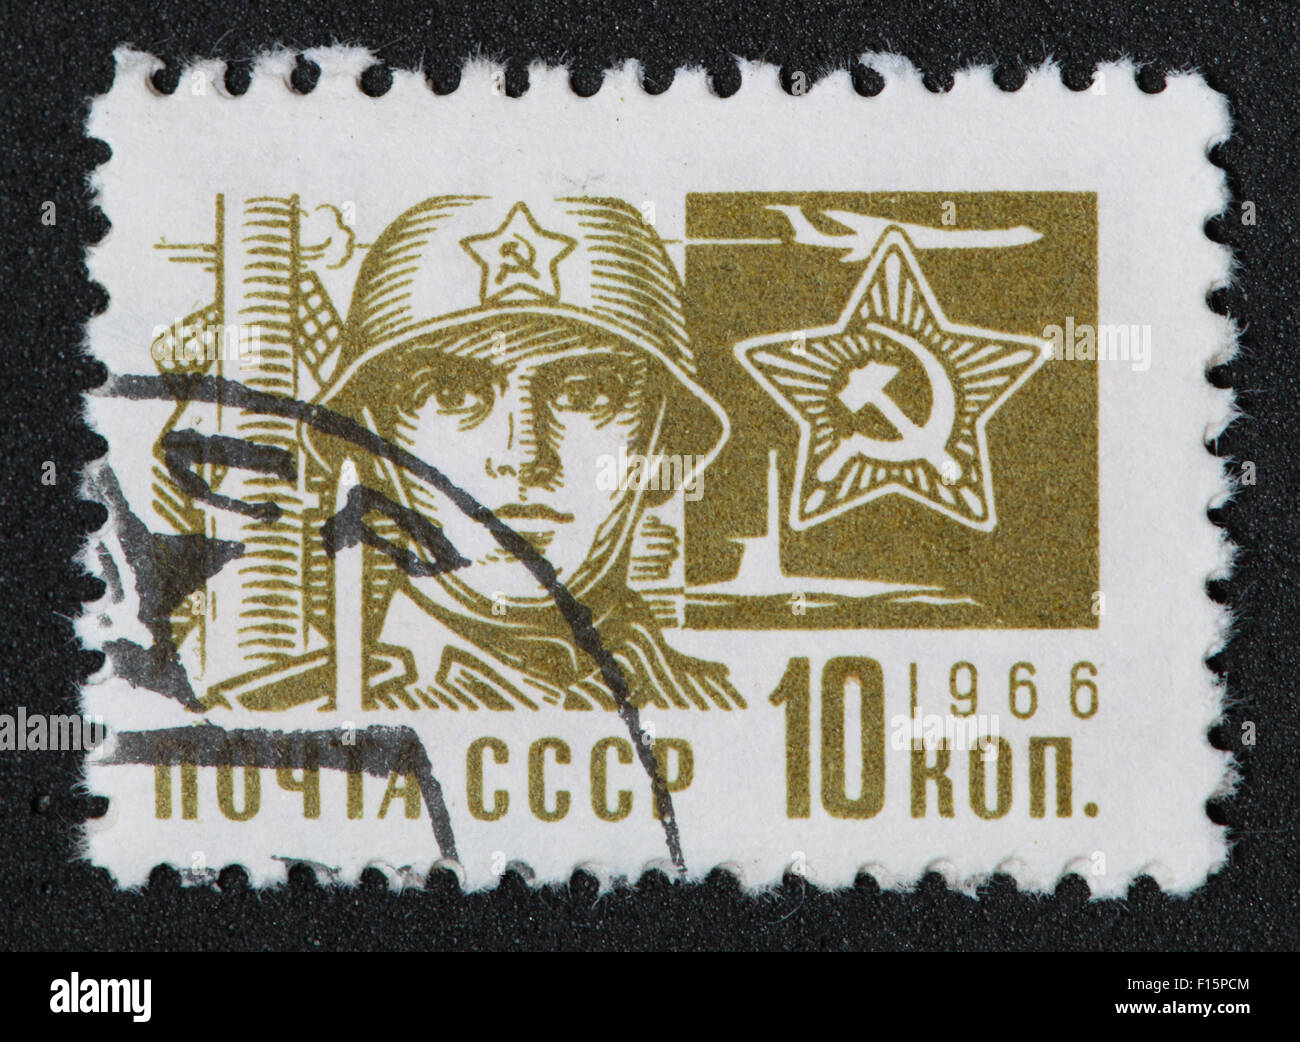 CCCP 10Kon 1966 soldier army olive colour color hammer sickle USSR Soviet stamp - Stock Image